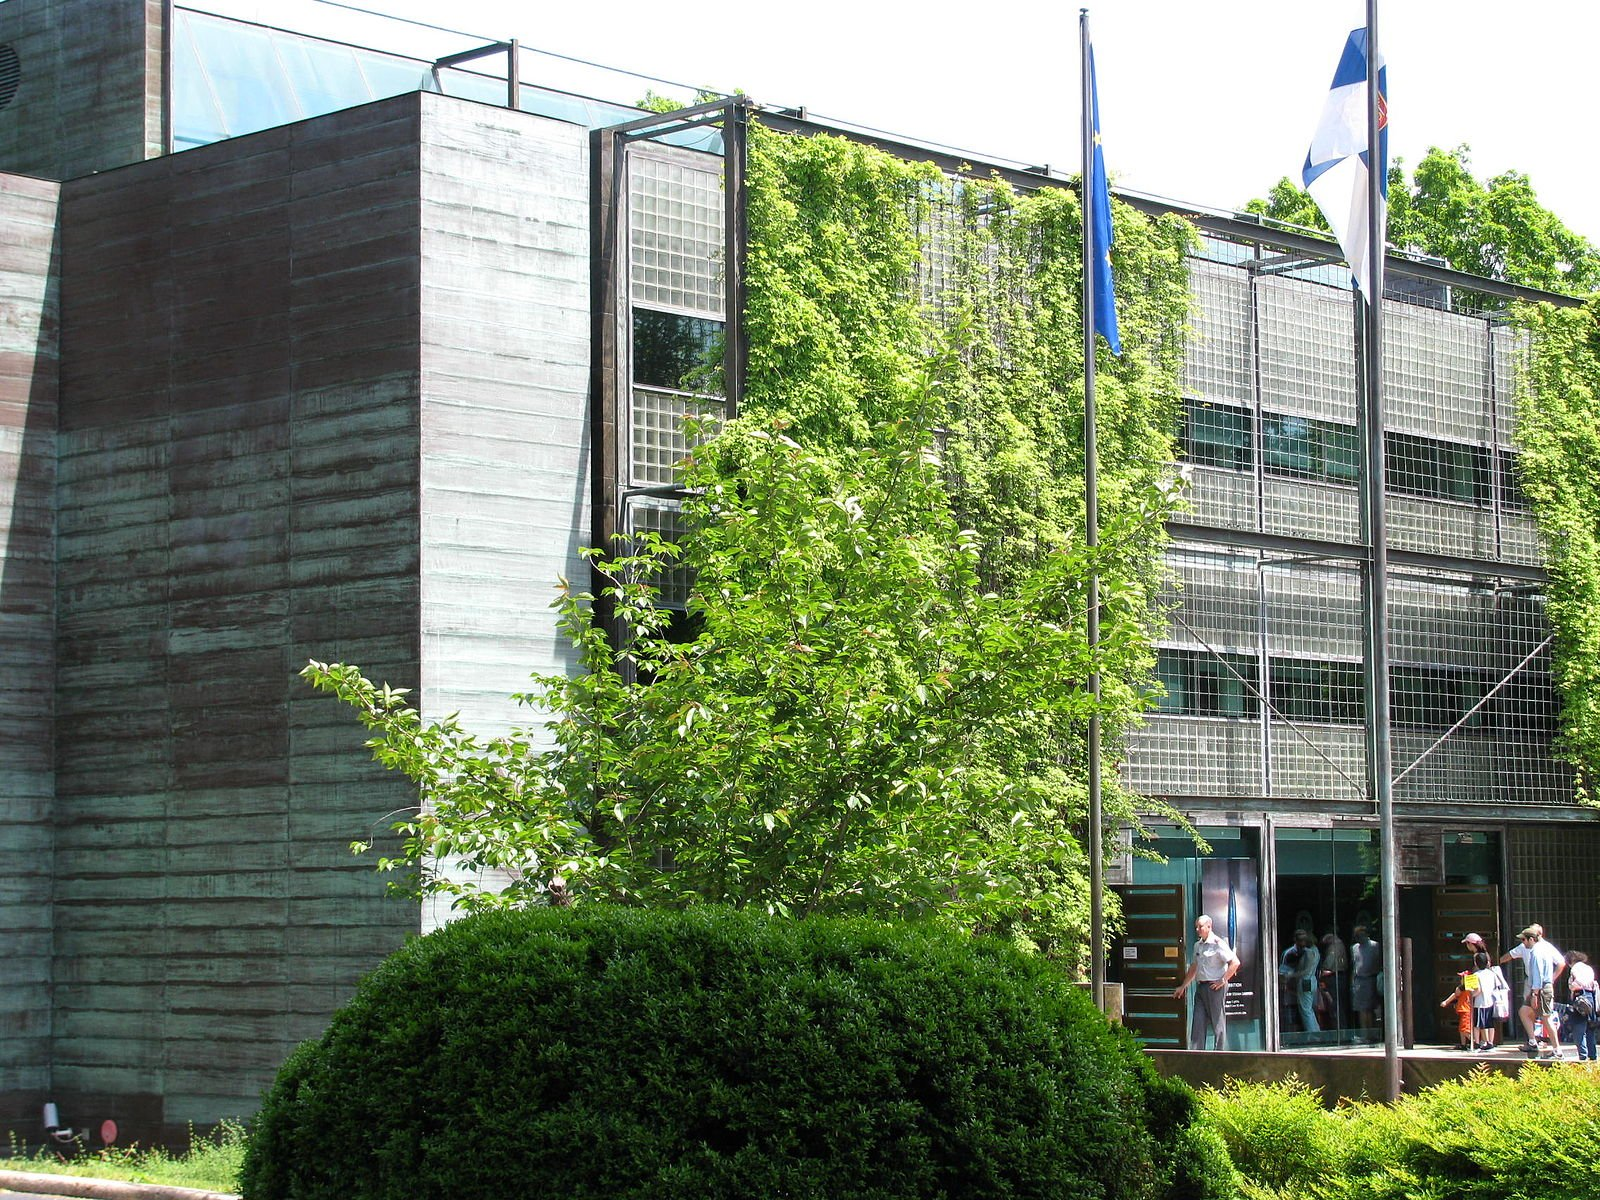 The Finnish Embassy is the first and only LEED Platinum embassy building in the United States. Photo by Slowking4 on Wikimedia.